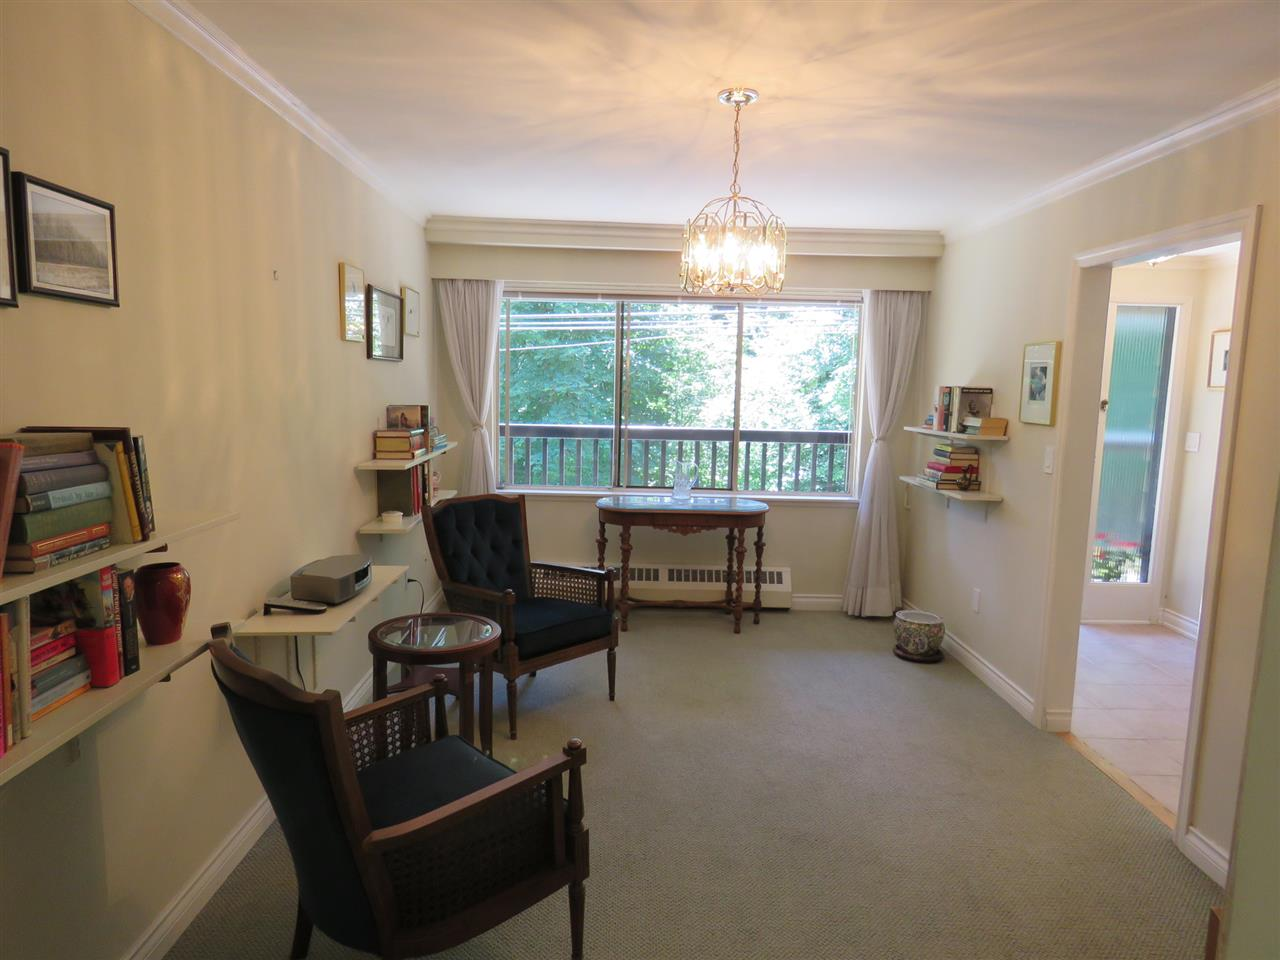 "Photo 10: 105 235 KEITH Road in West Vancouver: Cedardale Townhouse for sale in ""Spuraway Gardens"" : MLS(r) # R2178993"